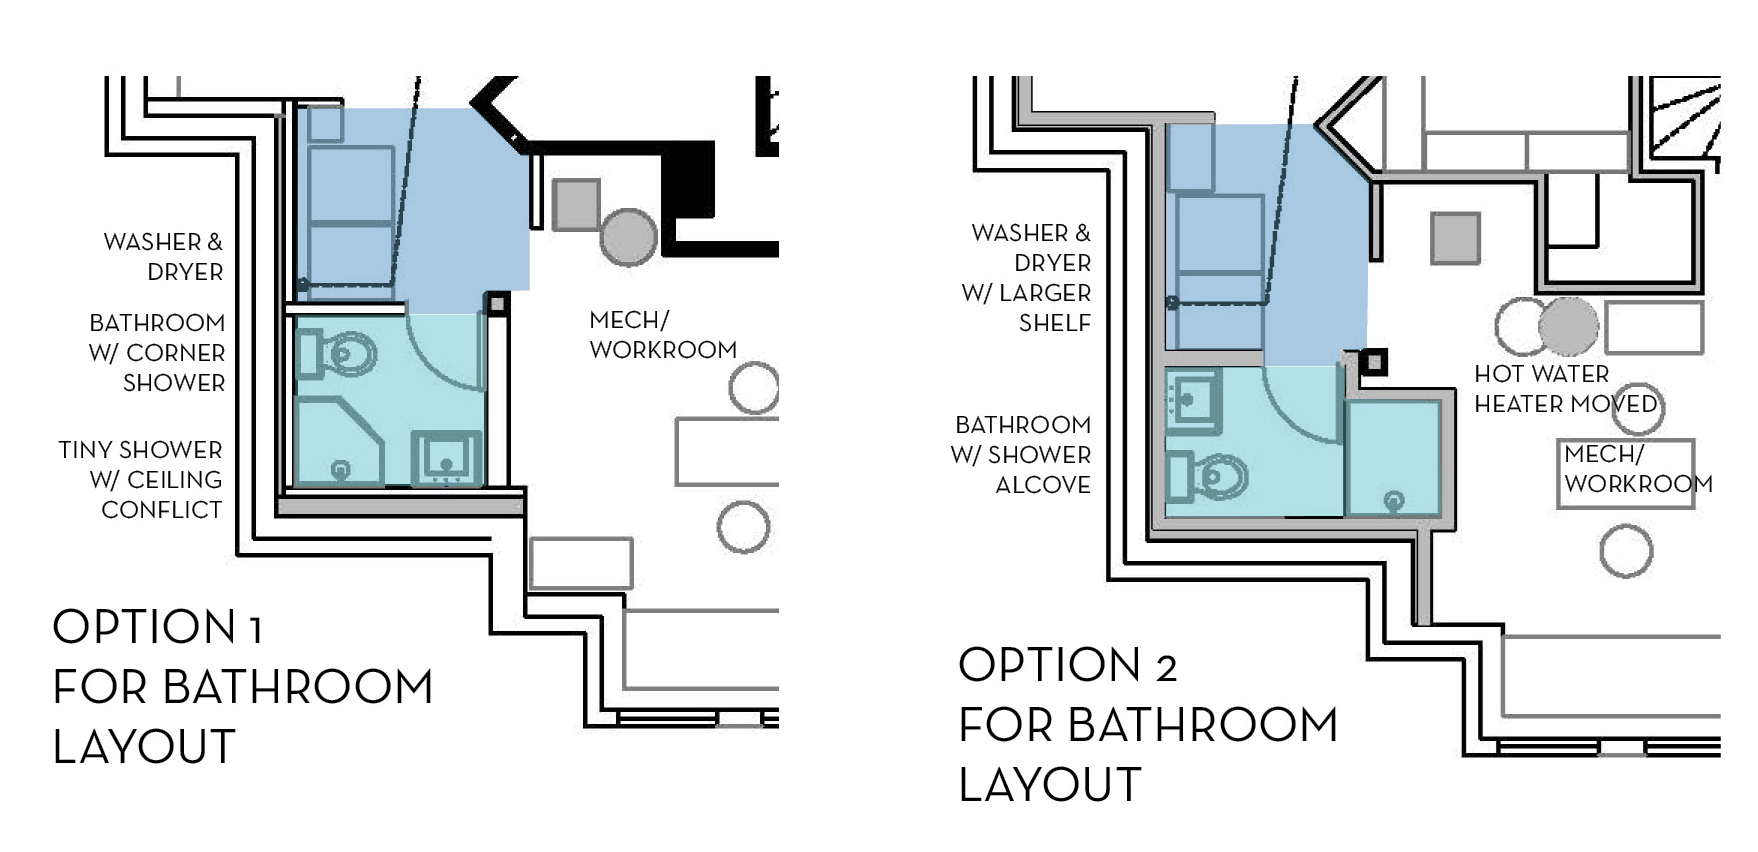 Bathroom layout best layout room for Basement design layouts